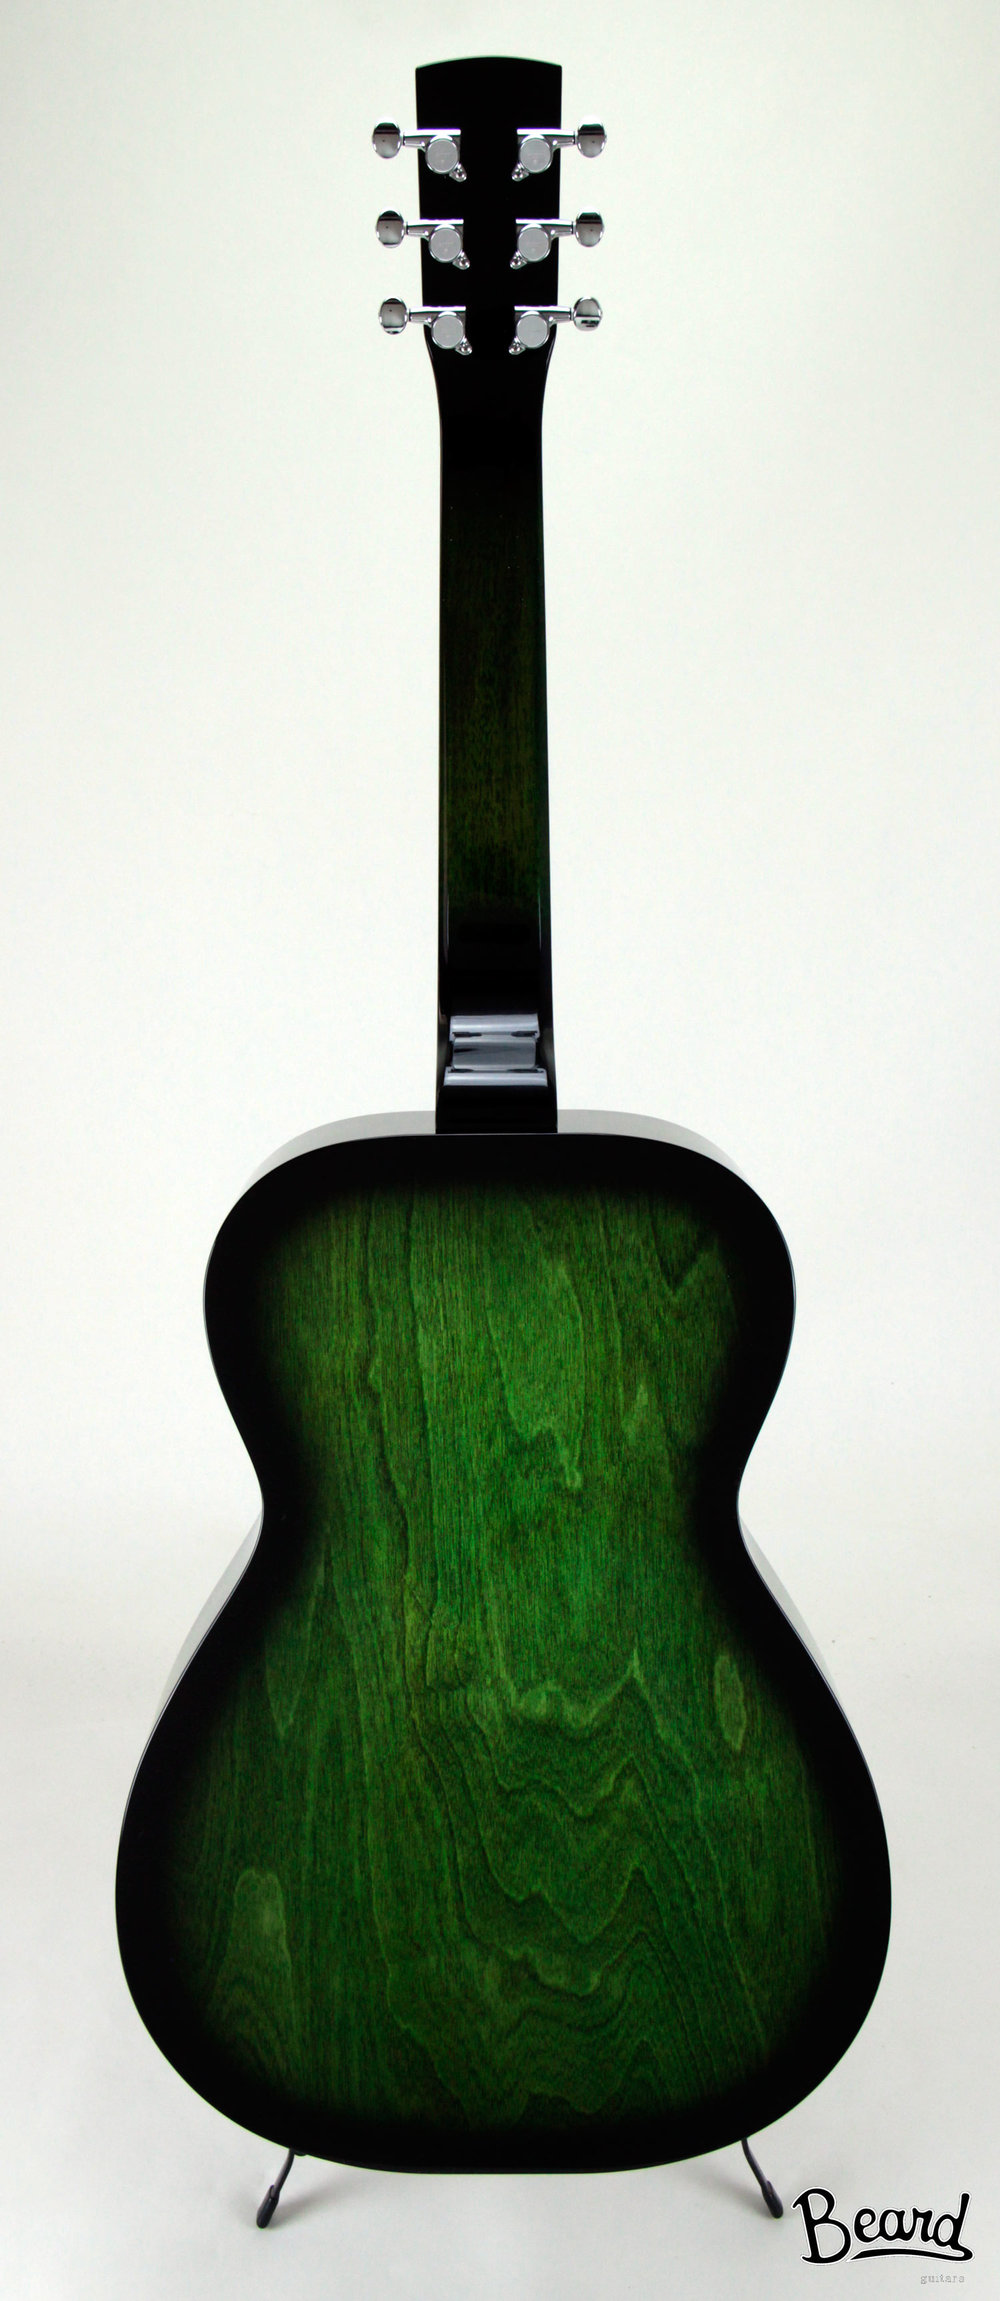 VINT-R-EMERALD-BURST-LEFTY-FB.jpg